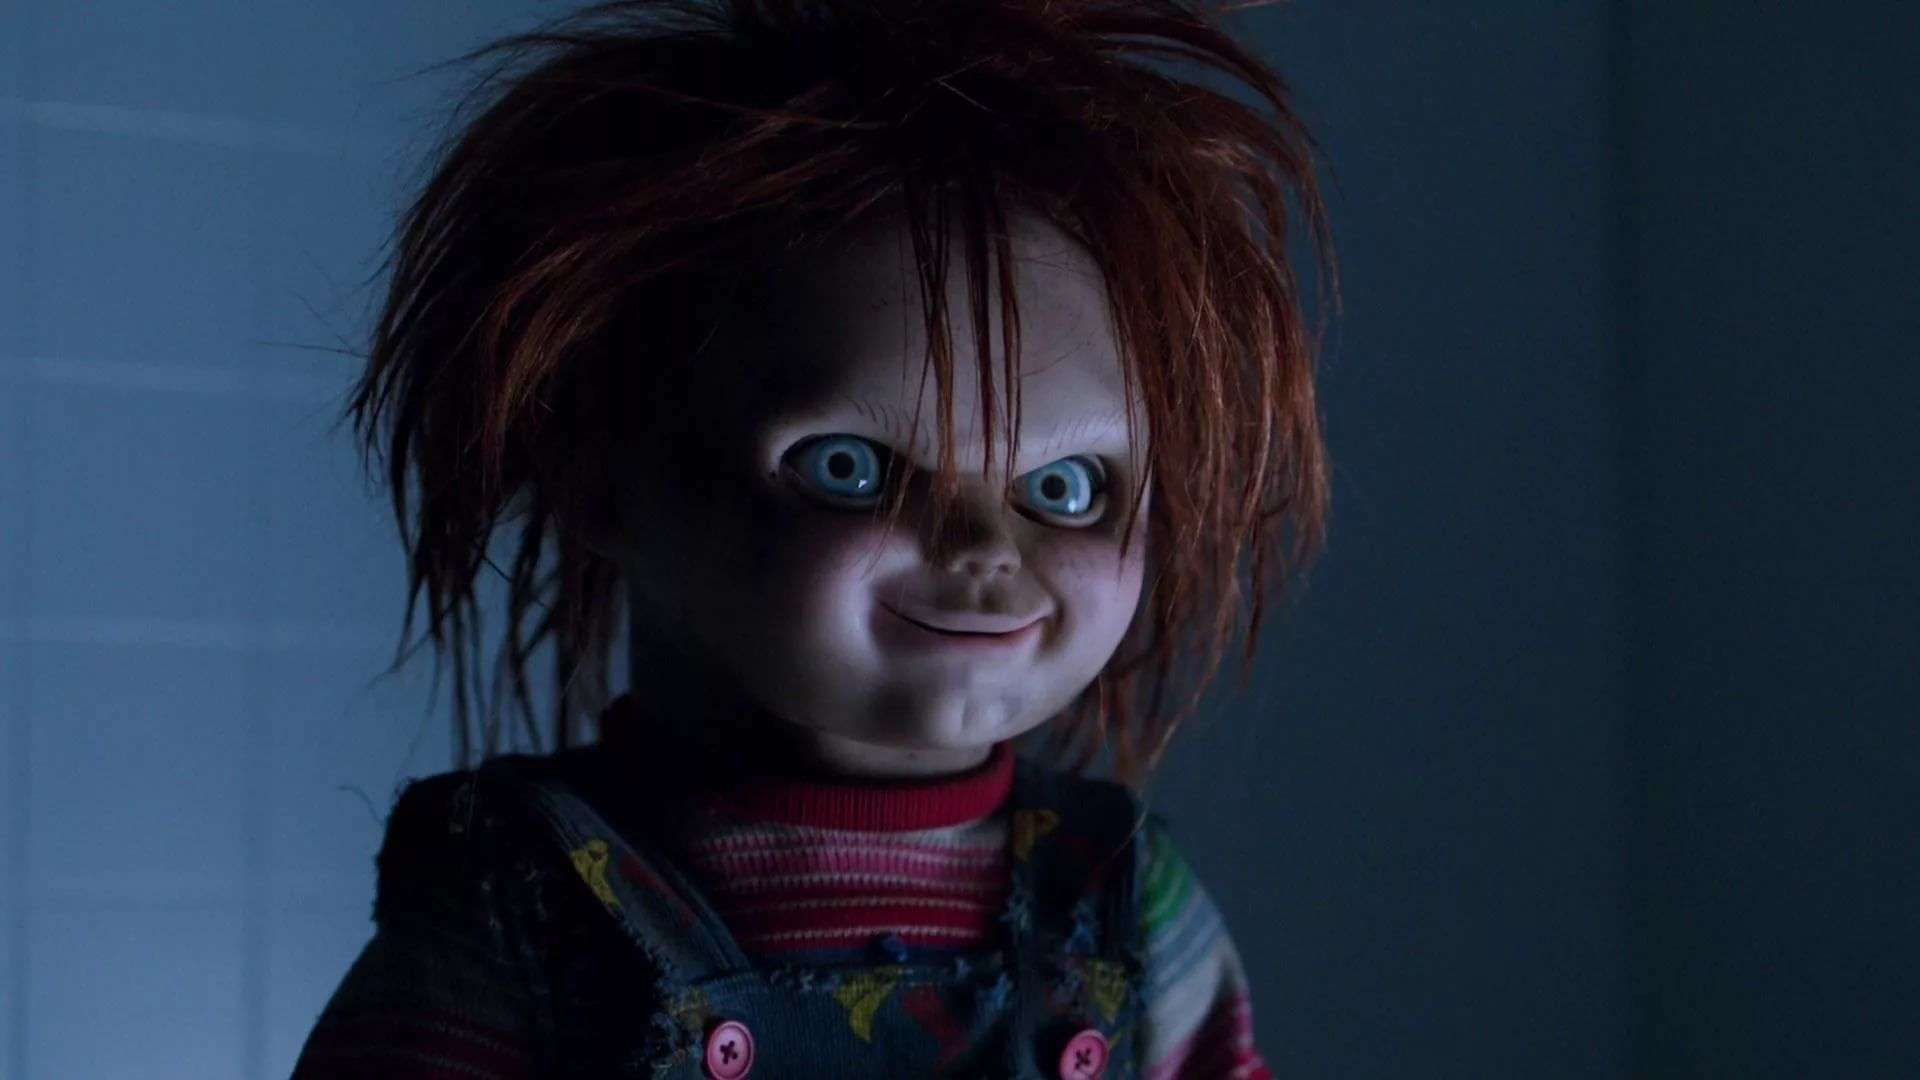 Chucky Doll free download wallpaper